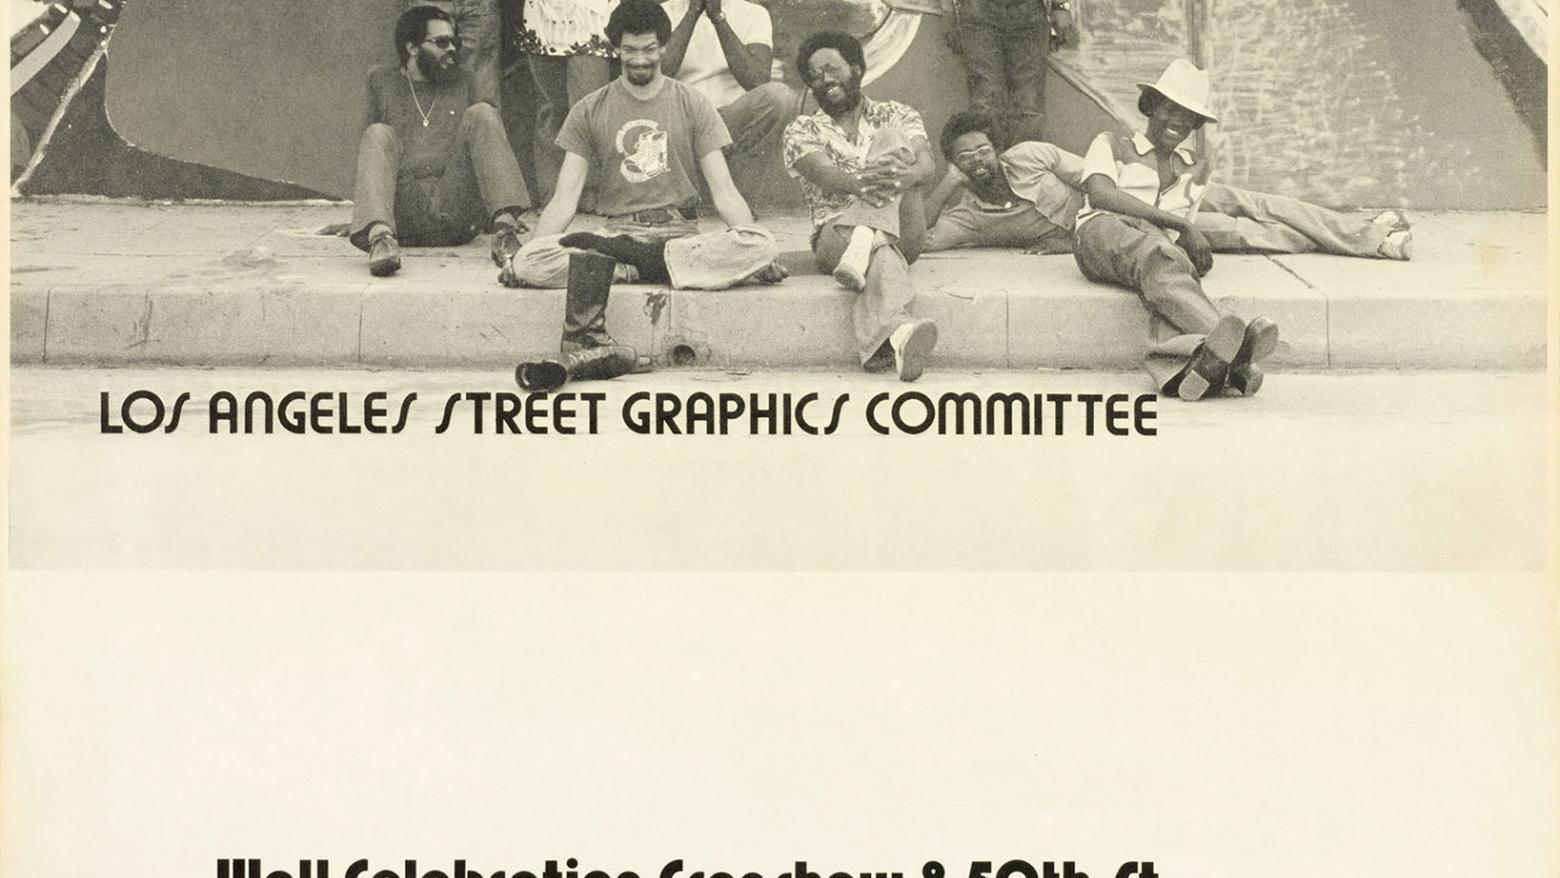 Poster for Los Angeles Street Graphics Committee mural sponsored by Brockman Gallery Productions. Muralists (left to right): Alonzo Davis, Roland Welton (standing), Kinshasha Conwill (standing), Mark Greenfield, George Combs, Ulysses Jenkins, Joe Sims, Houston Conwill (standing), and Lester Gones